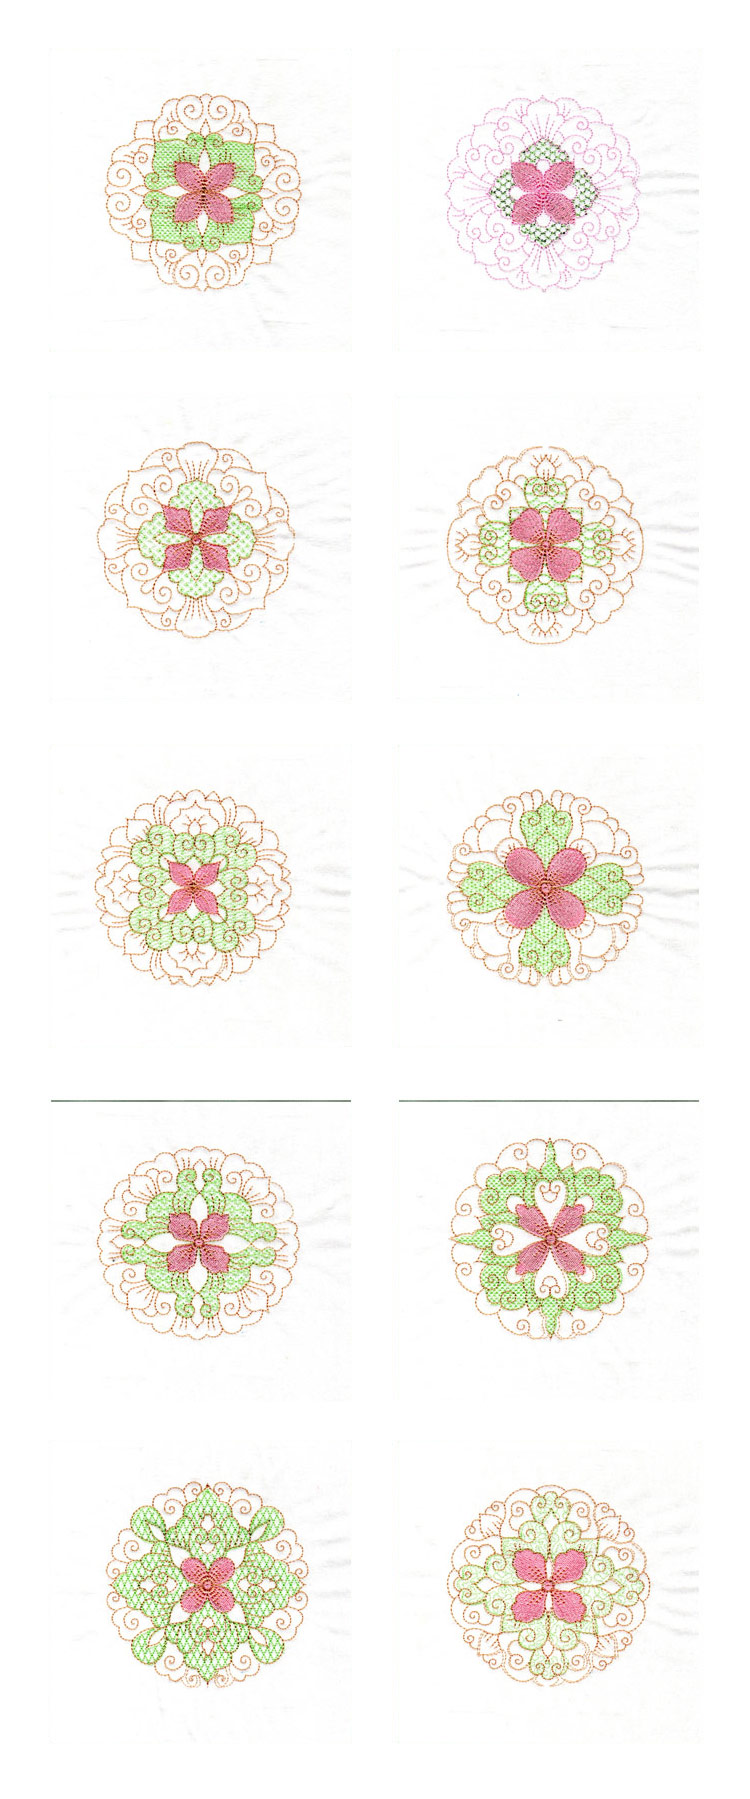 Quilt Blocks 3 Embroidery Machine Design Details